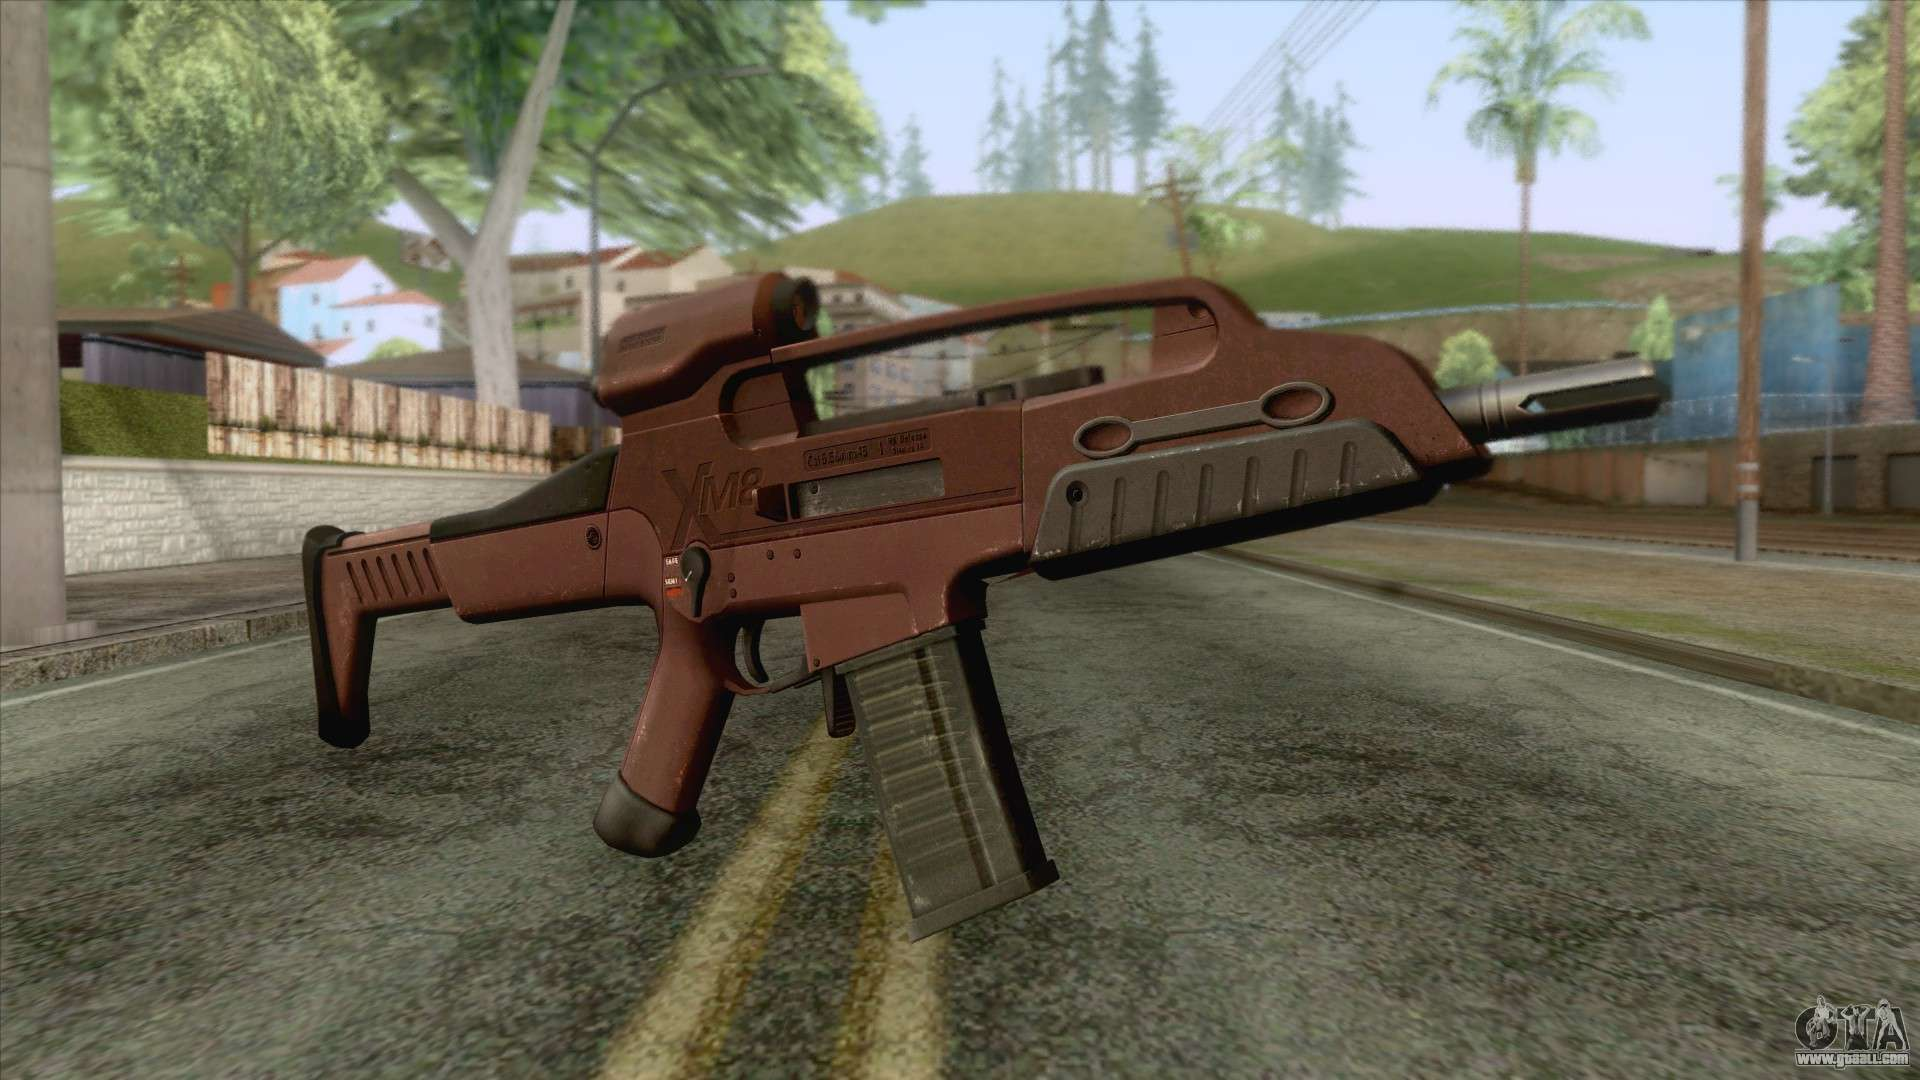 Xm8 Compact Carbine XM8 Compact Rifle Red ...